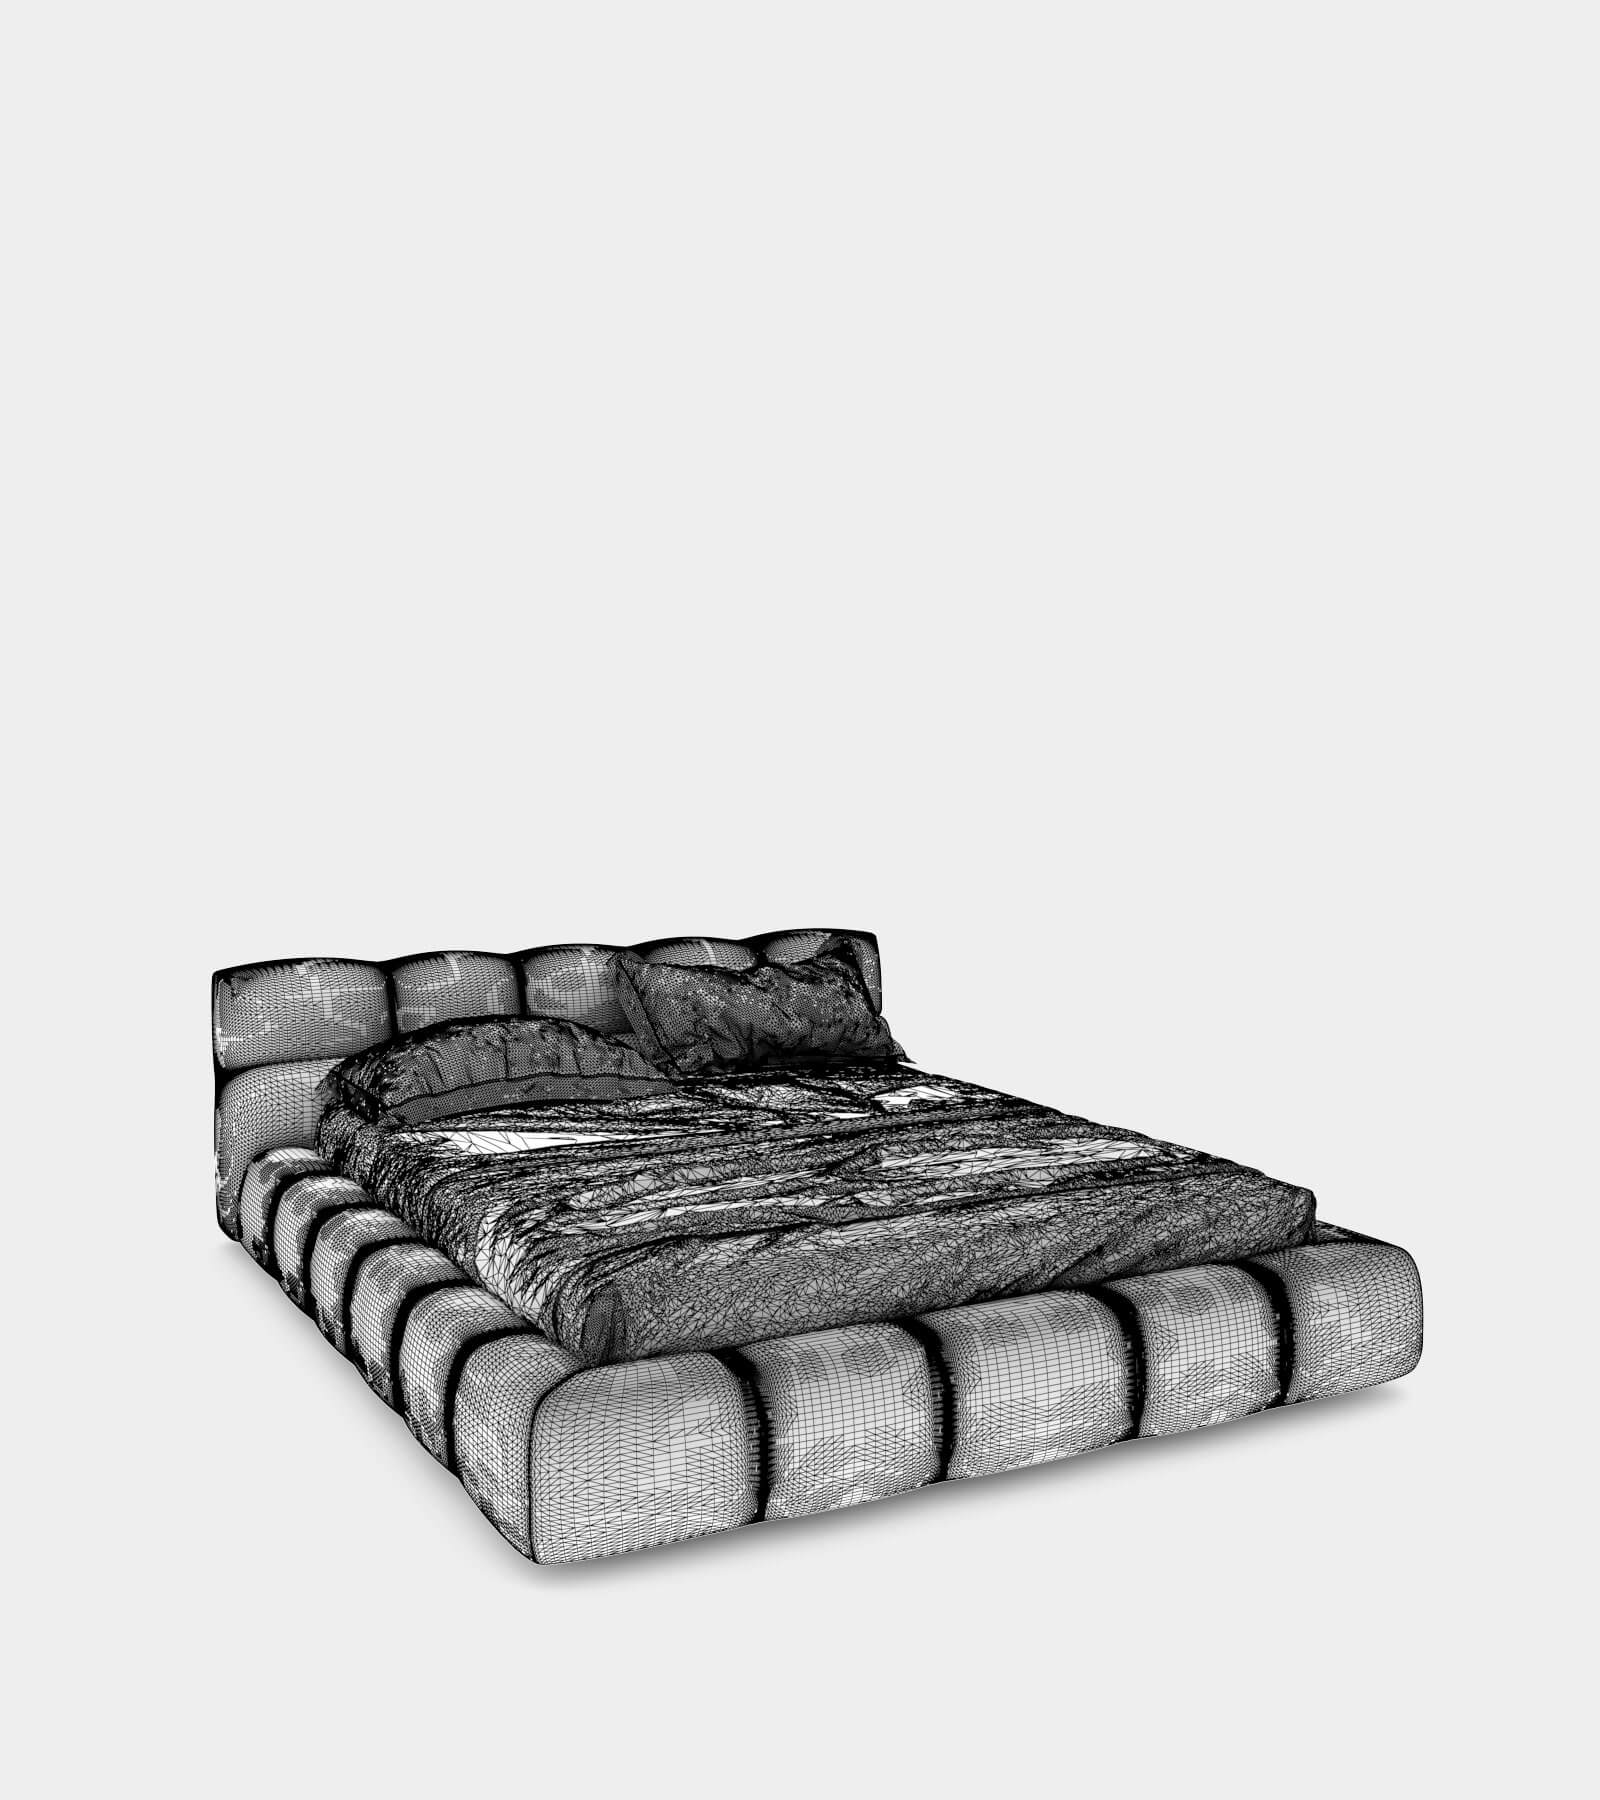 Modern leather bed-wire-1 3D Model